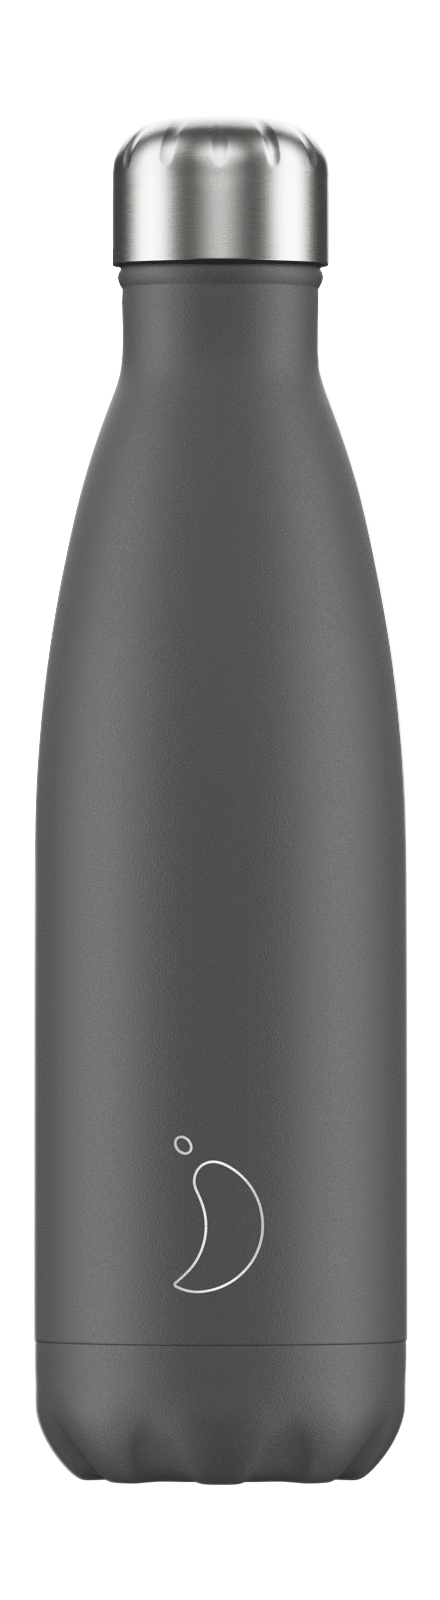 cadeauxwells - 500ml Chilly's Bottle - Monochrome Grey - Chilly's Bottles - Homewares